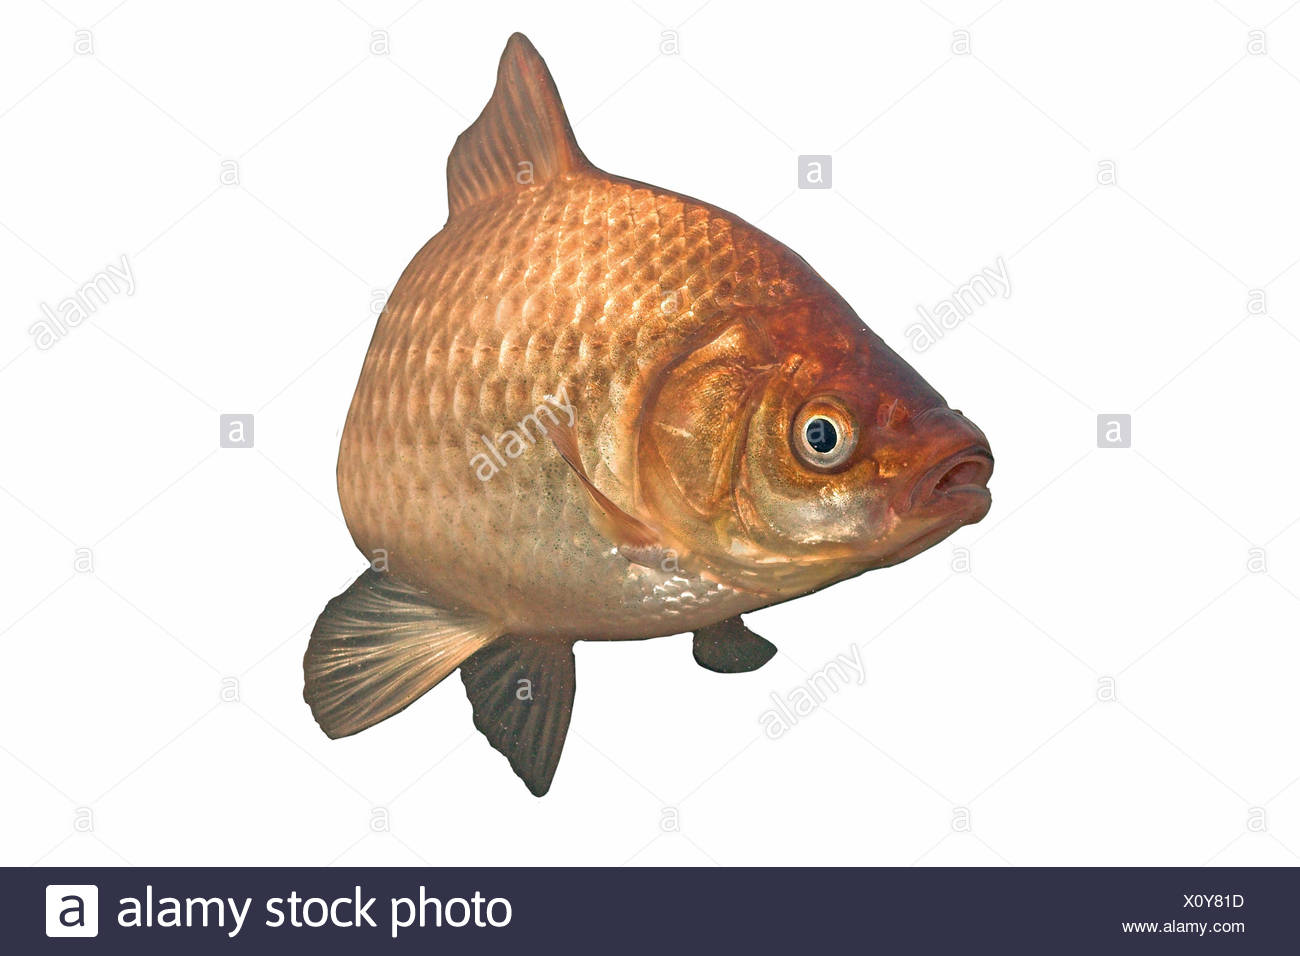 rendered photo of a gibel carp against a white background Stock Photo